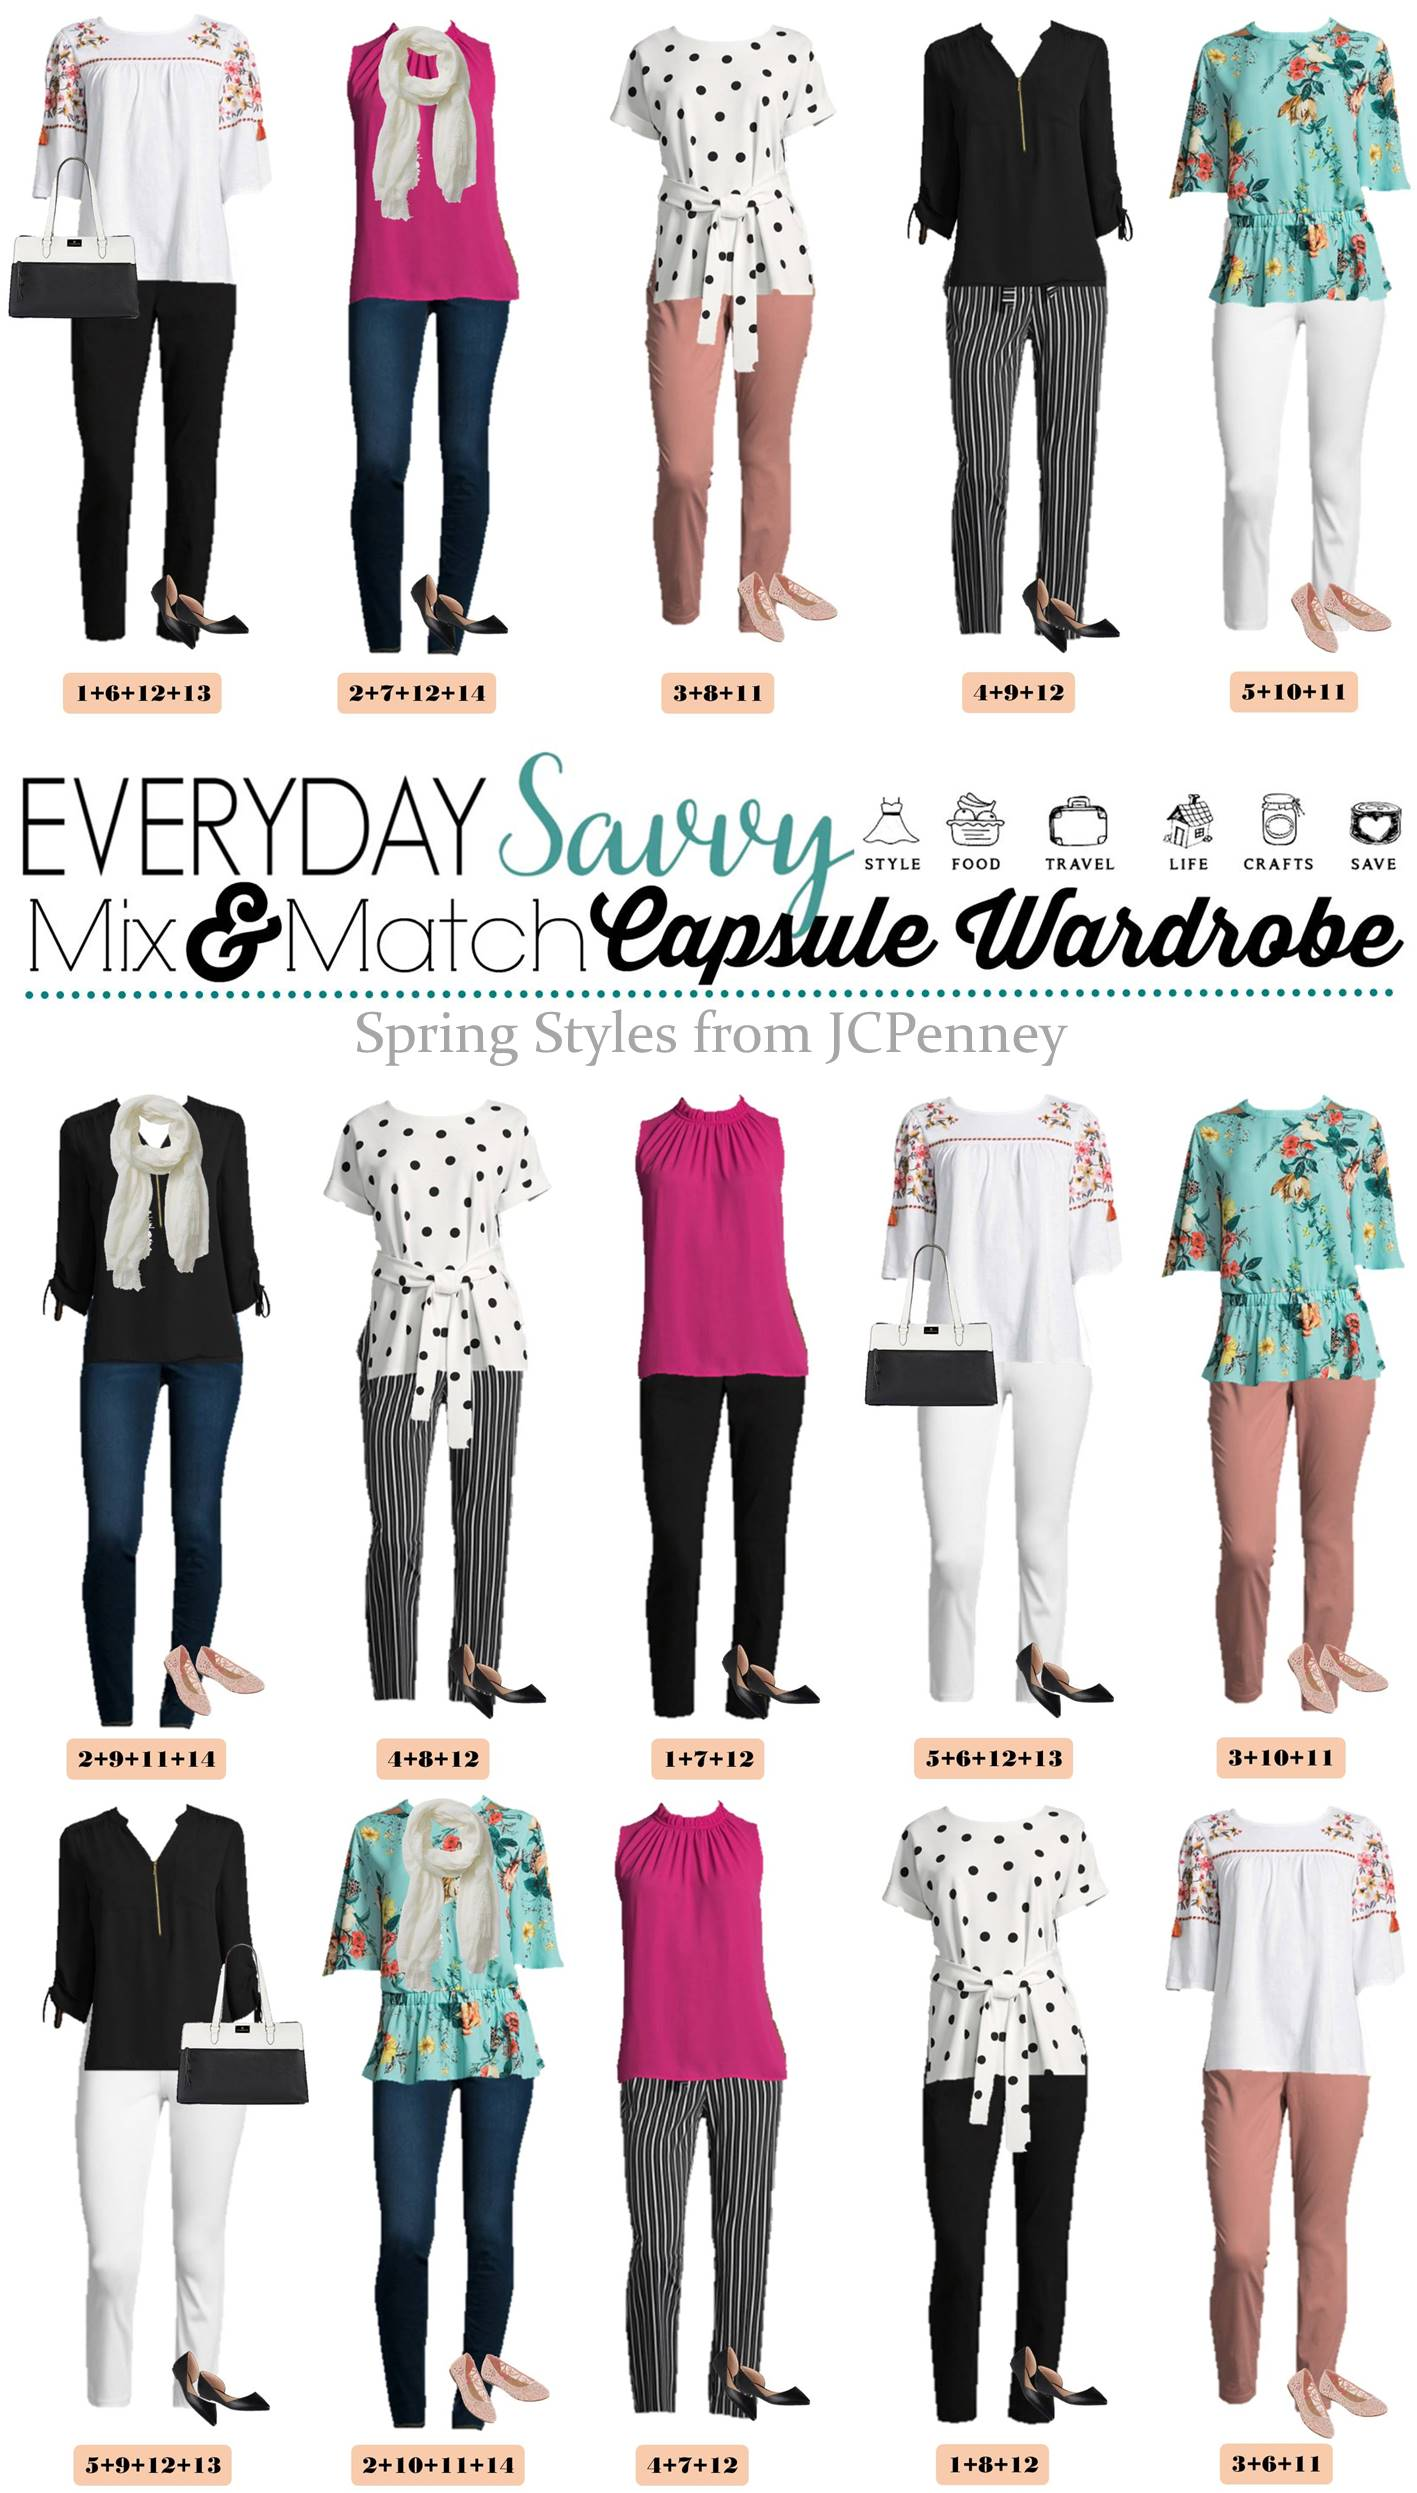 spring outfits from JCPenney- 15 mix and match outfits